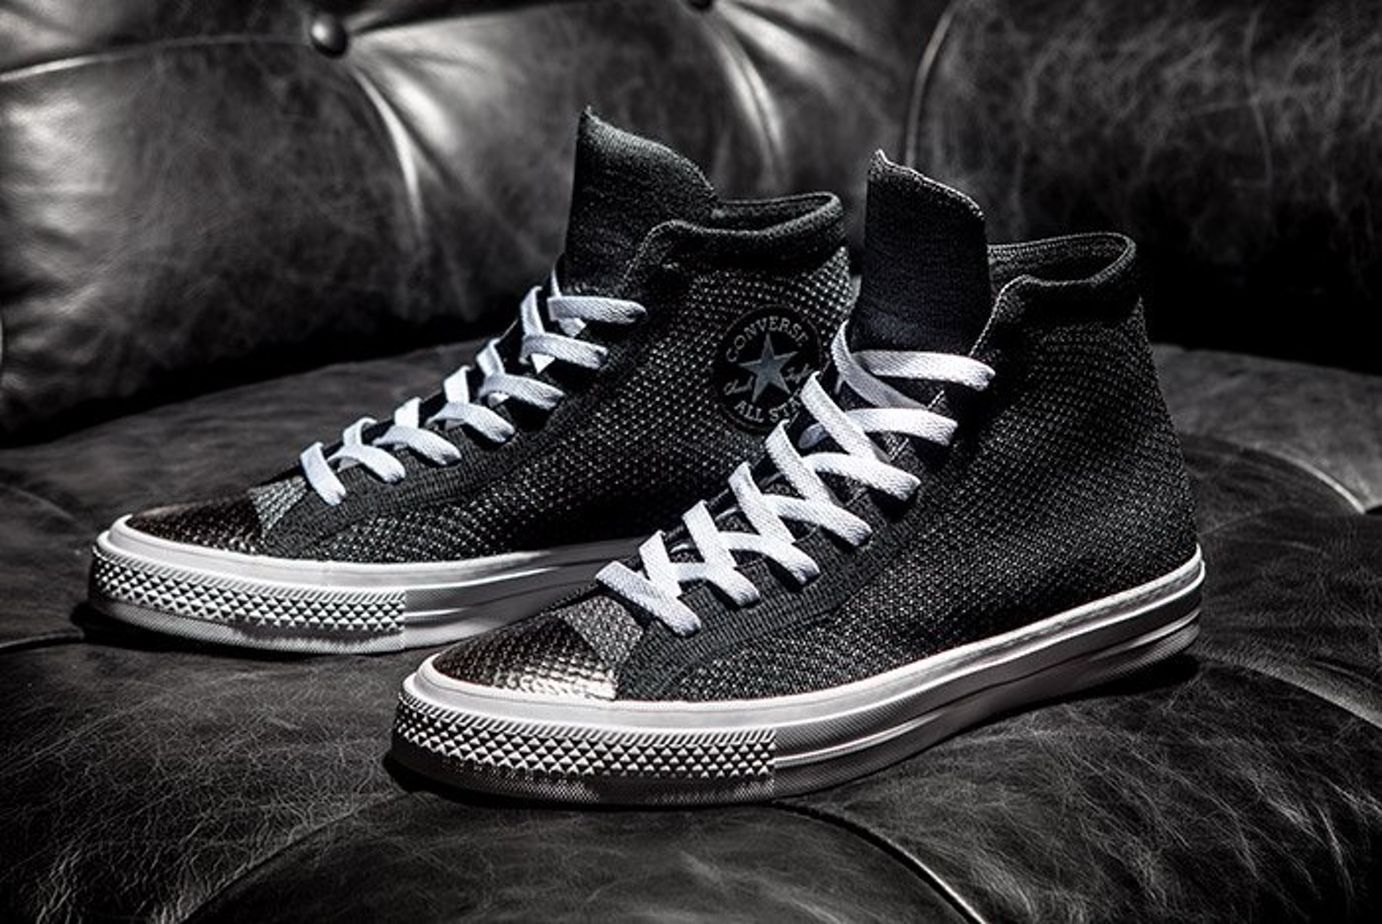 192b4938eaca Converse s iconic Chuck Taylor All-Star just got a major update ...